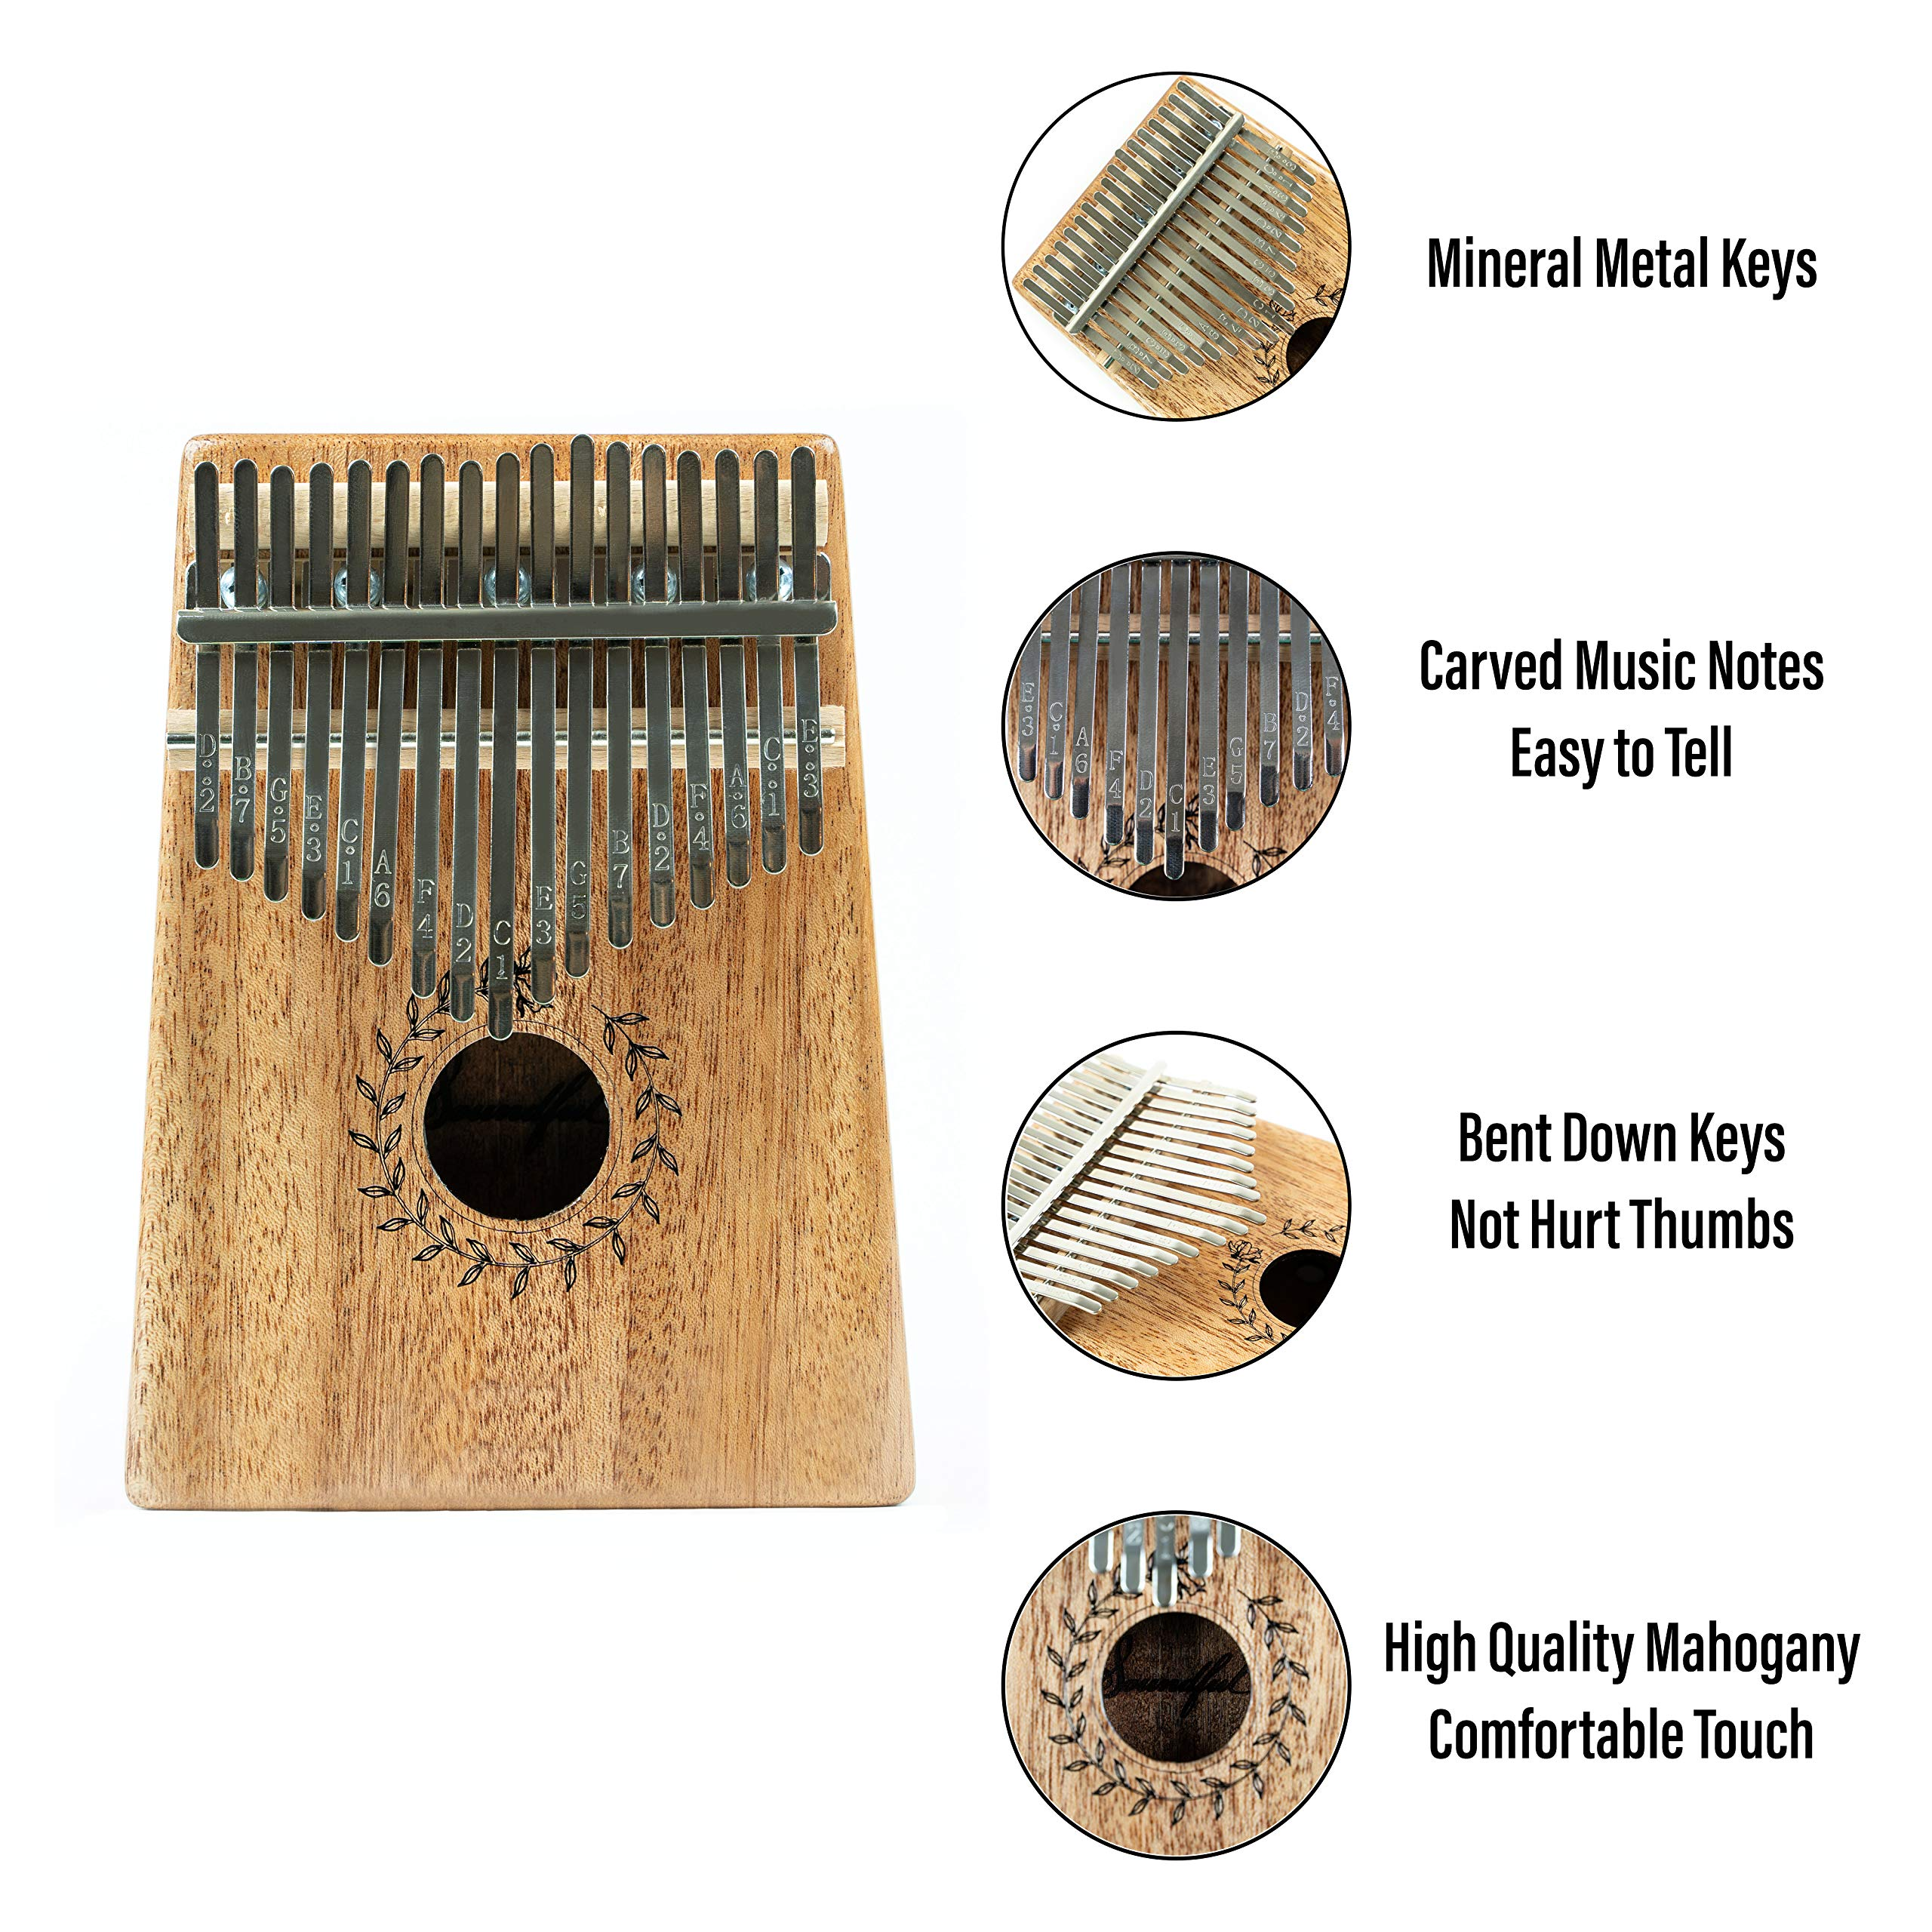 Soundful 17 Key Kalimba Thumb Piano, Solid Mahogany Body Finger Piano, Professional Mbira Musical Instrument with Tuning Hammer and Protective Case by Soundful (Image #3)